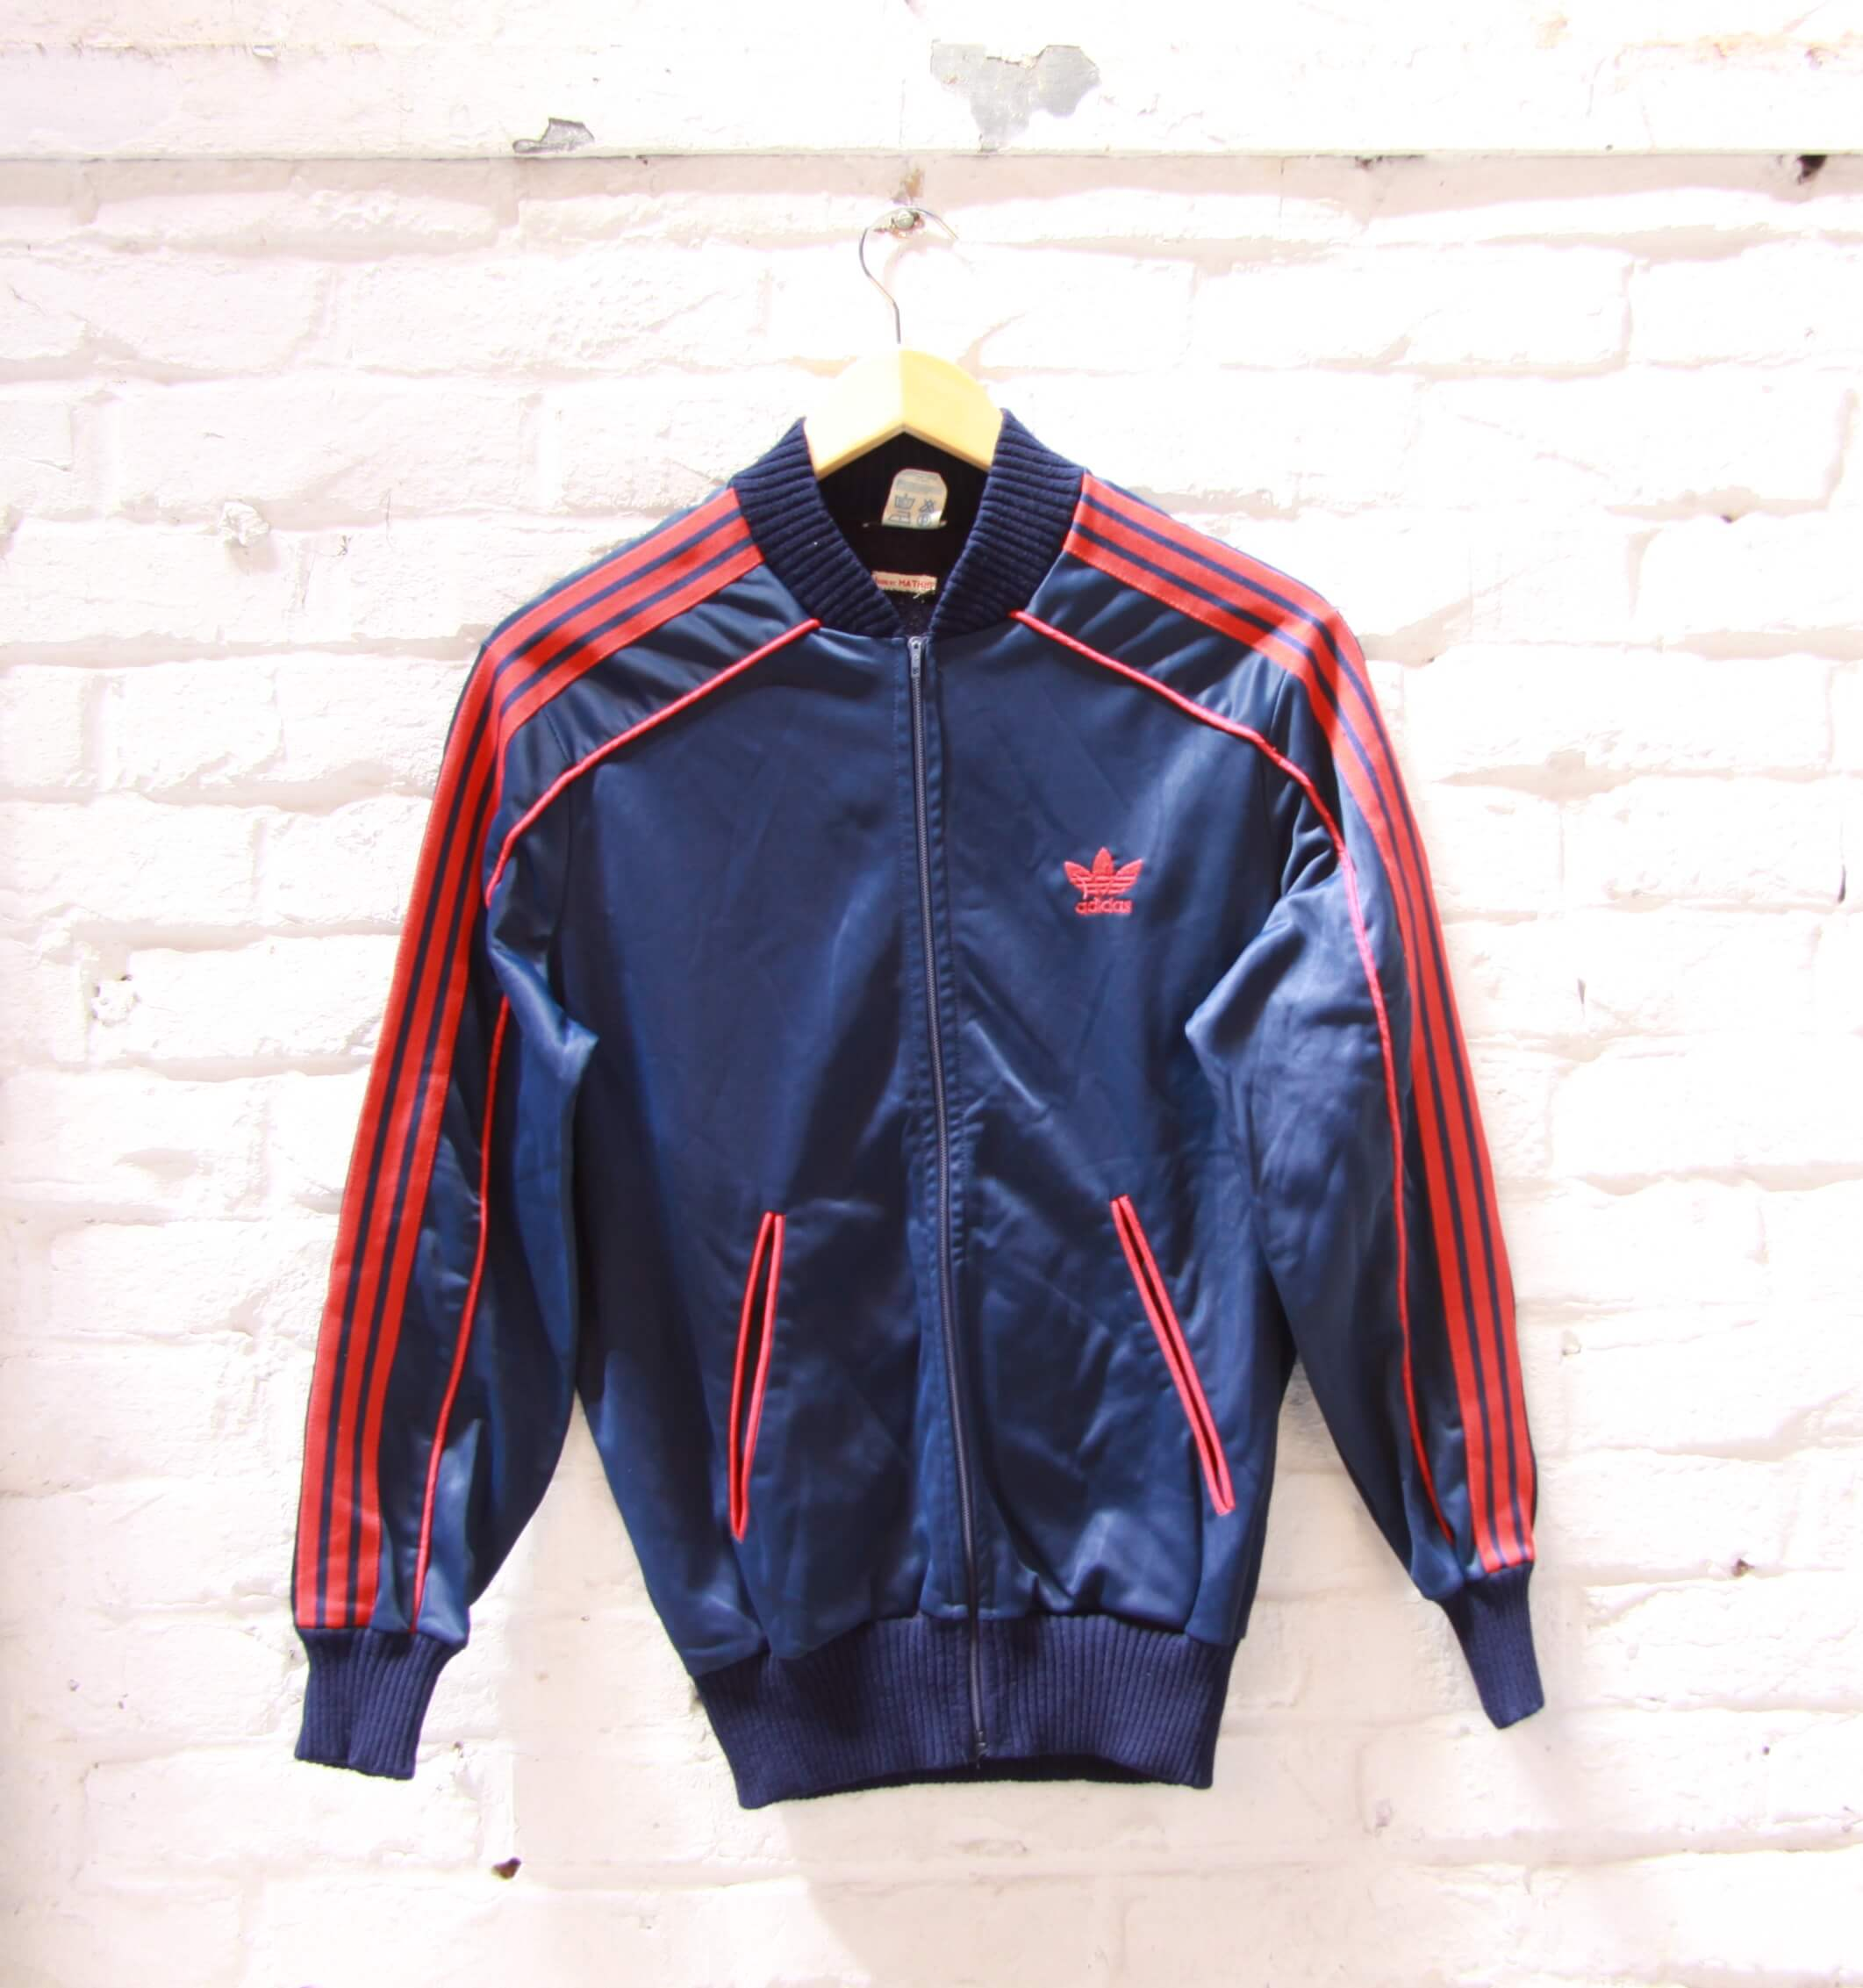 los angeles casual shoes new appearance Veste de Jogging - Adidas - Vintage - Bleu Marine - Rouge ...